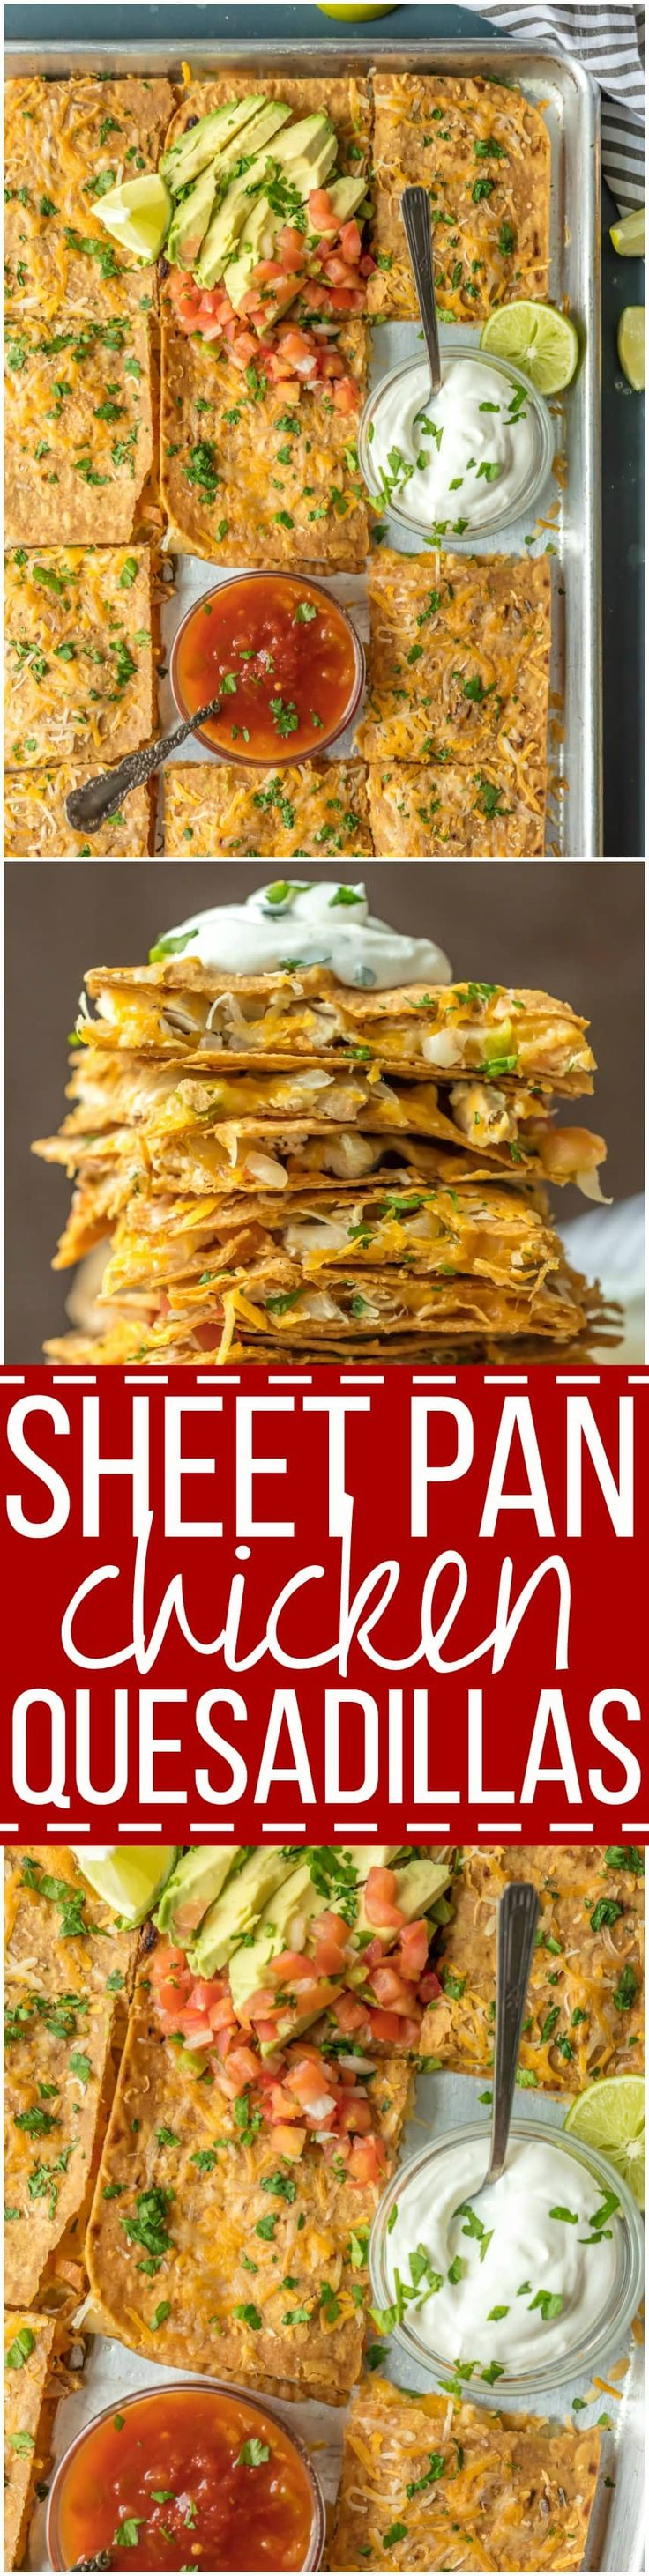 SHEET PAN CHICKEN QUESADILLAS are the easiest and best way to make delicious quesadillas for a crowd! These baked quesadillas can be made with any filling and toppings, and are sure to please even the pickiest eaters.